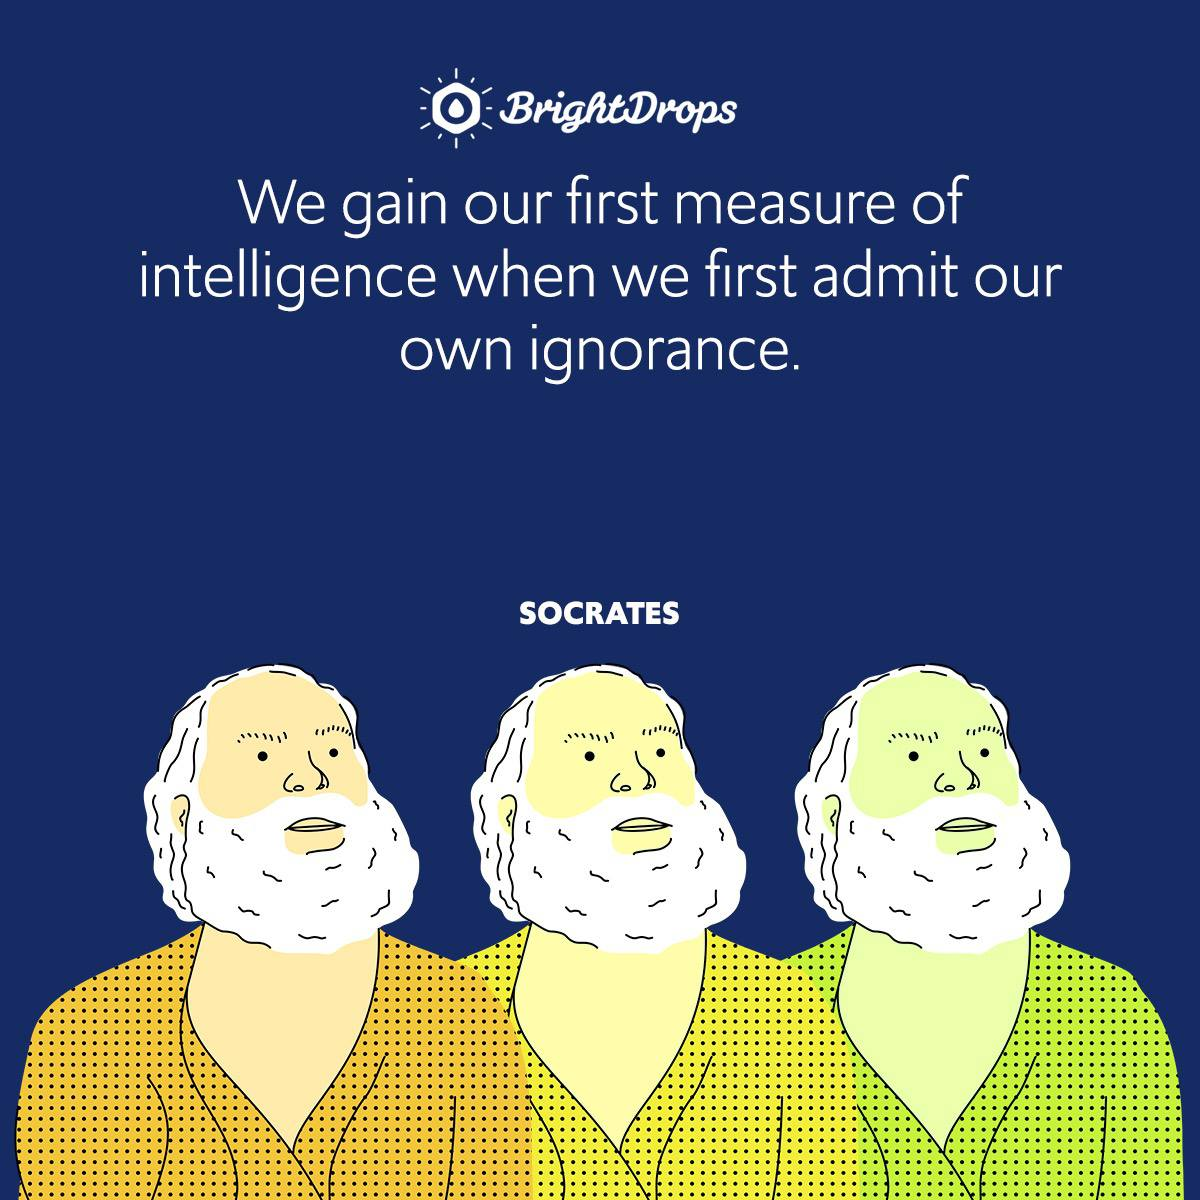 We gain our first measure of intelligence when we first admit our own ignorance.